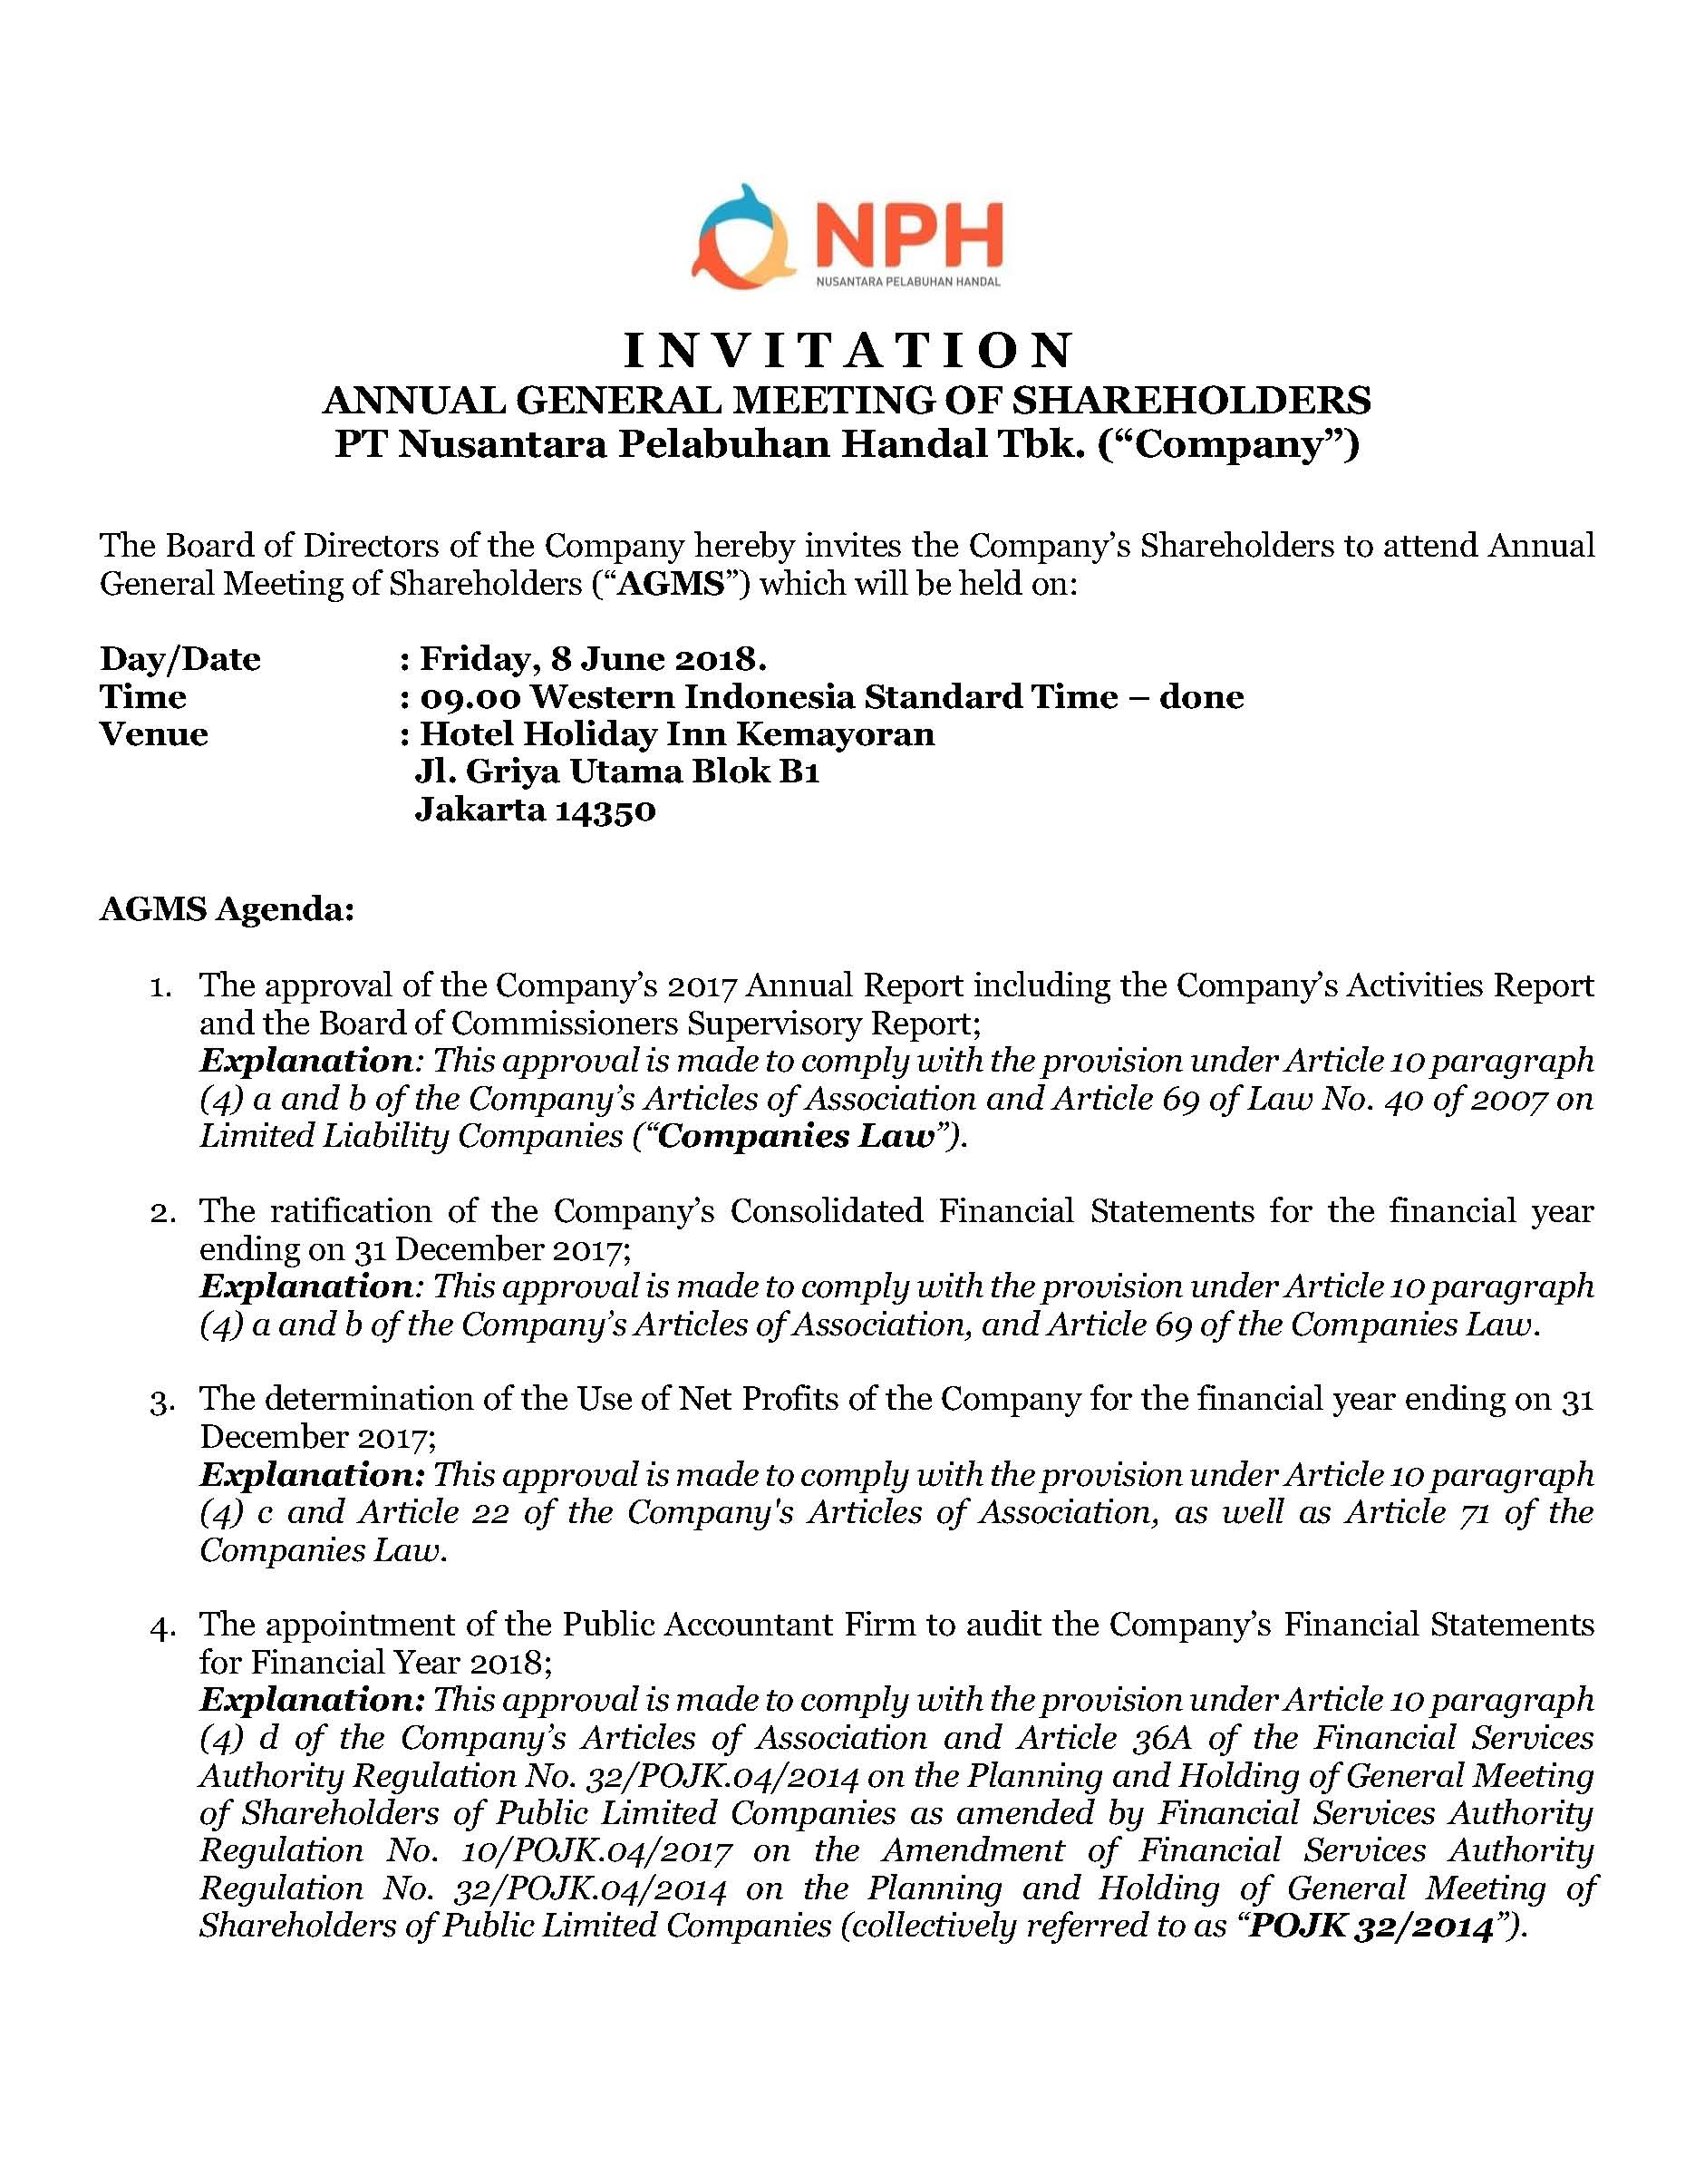 INVITATION ANNUAL GENERAL MEETING OF SHAREHOLDERS